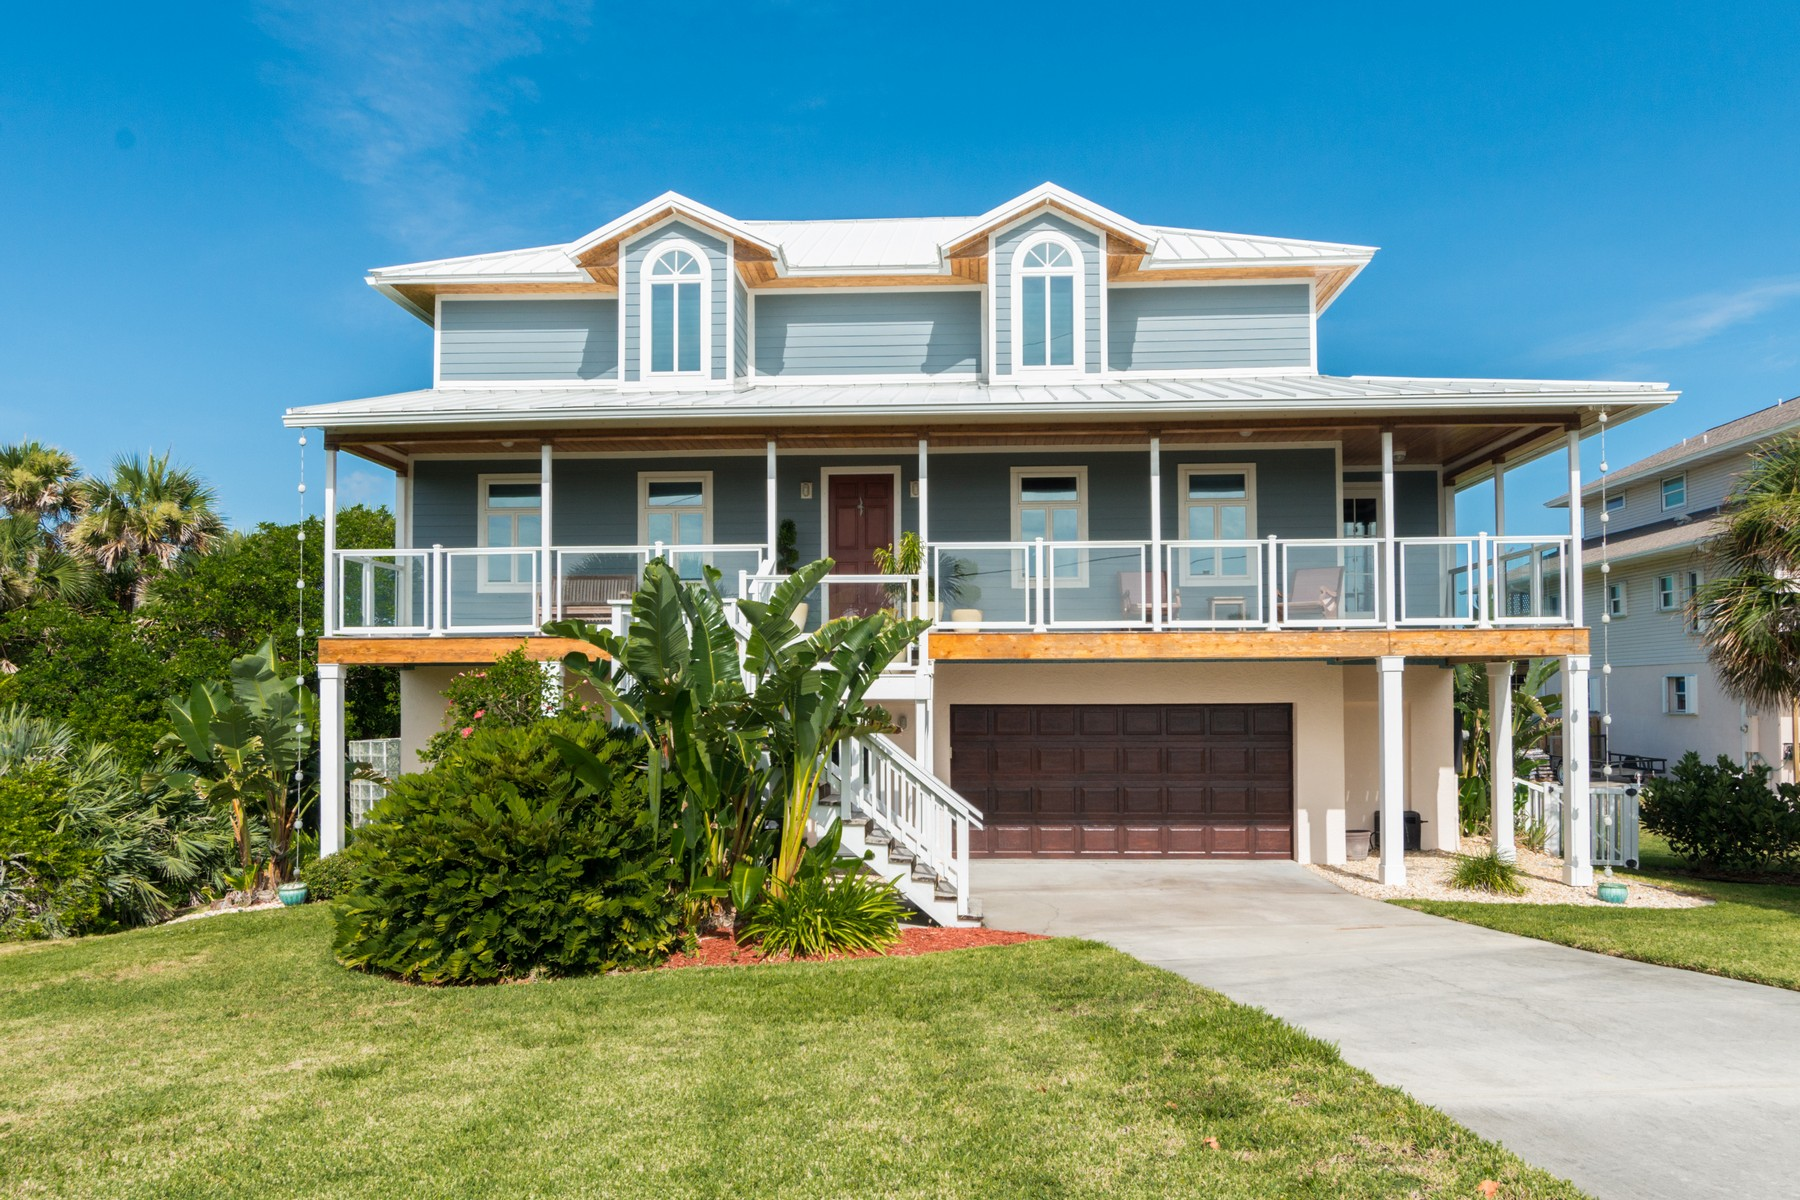 Single Family Home for Sale at Exquisite 3 story riverfront home 8360 Highway A1A, Melbourne Beach, Florida 32951 United States